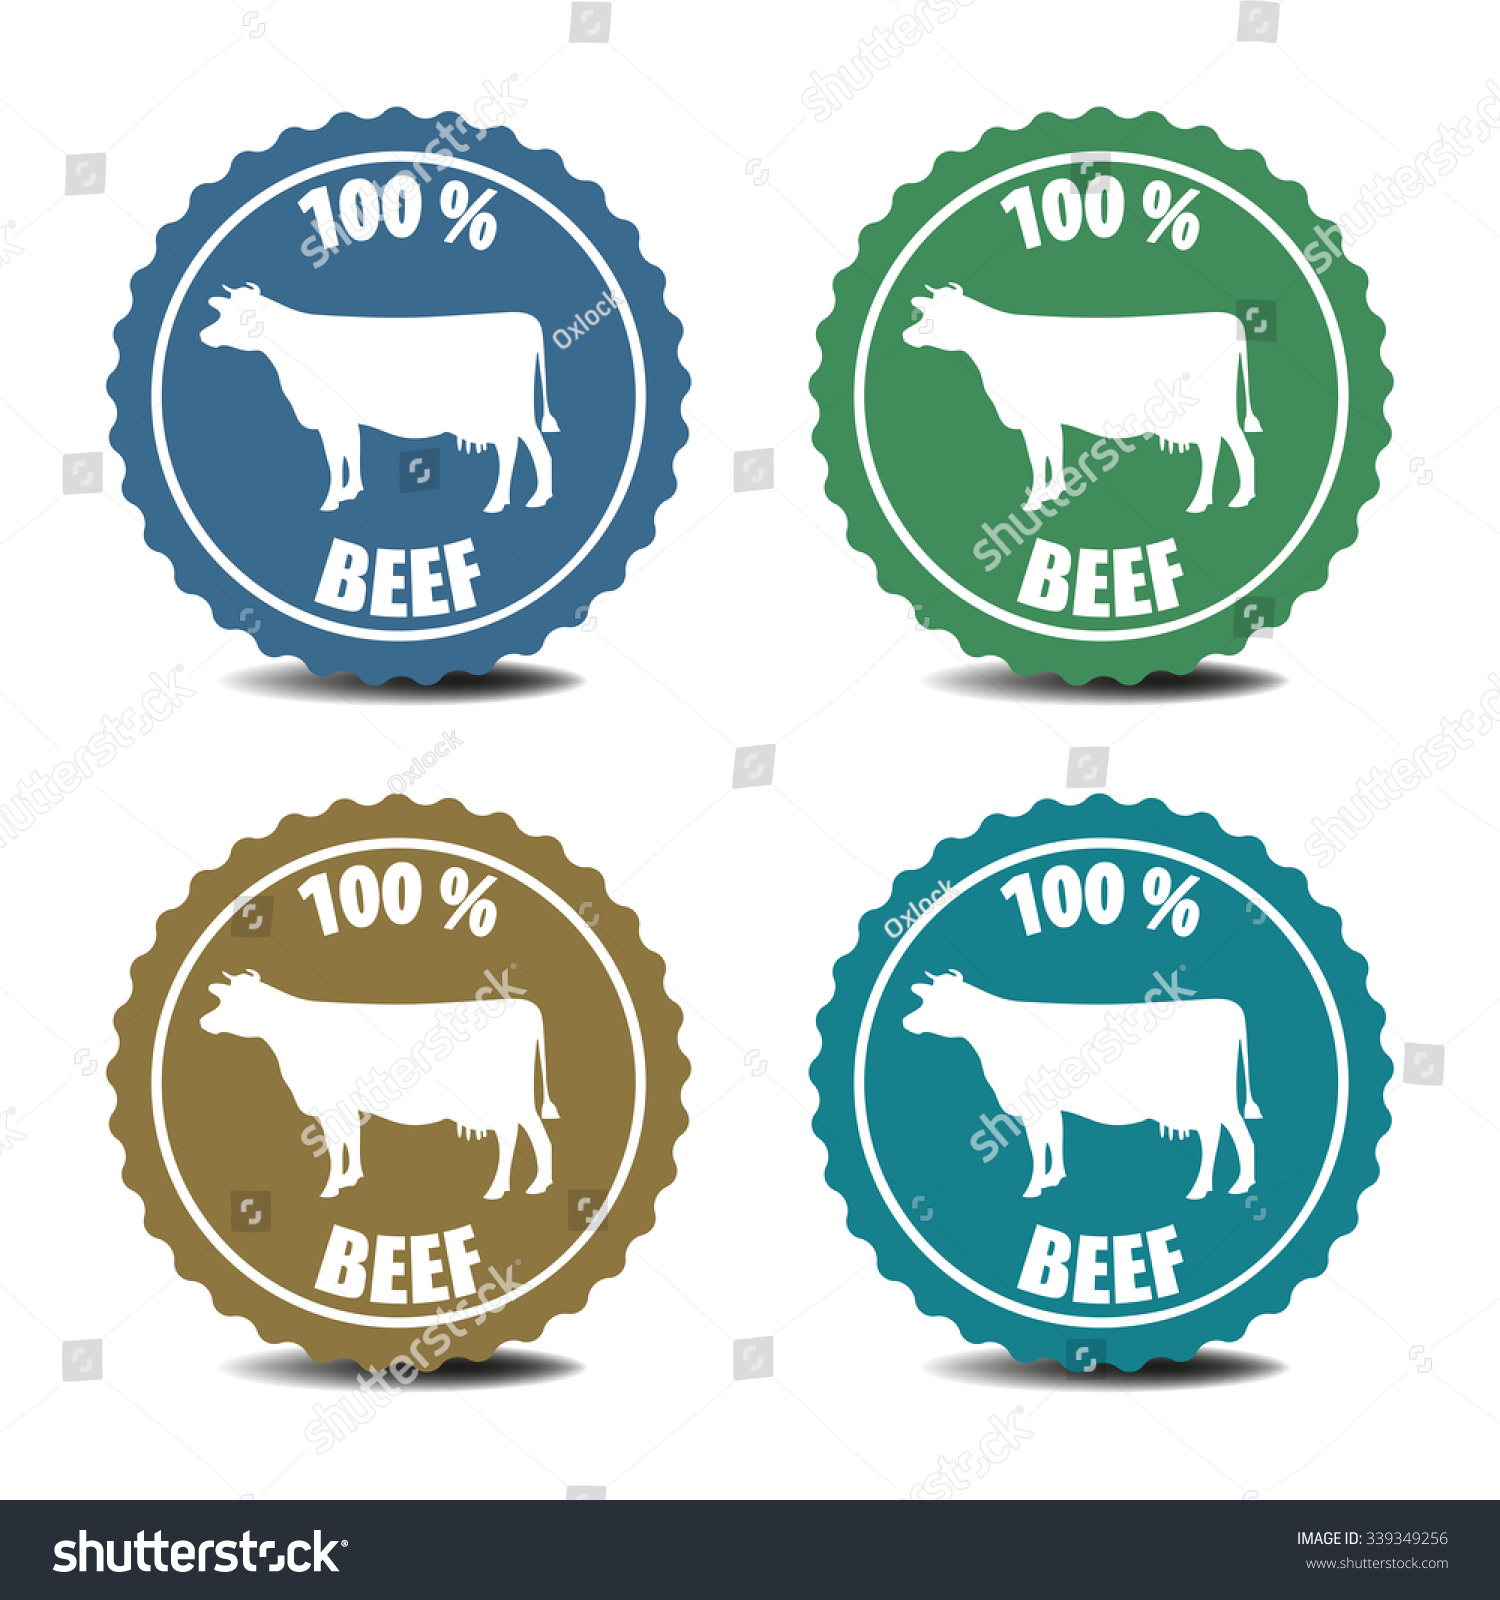 Set four isolated stickers cow symbol stock vector 339349256 set four isolated stickers cow symbol stock vector 339349256 shutterstock buycottarizona